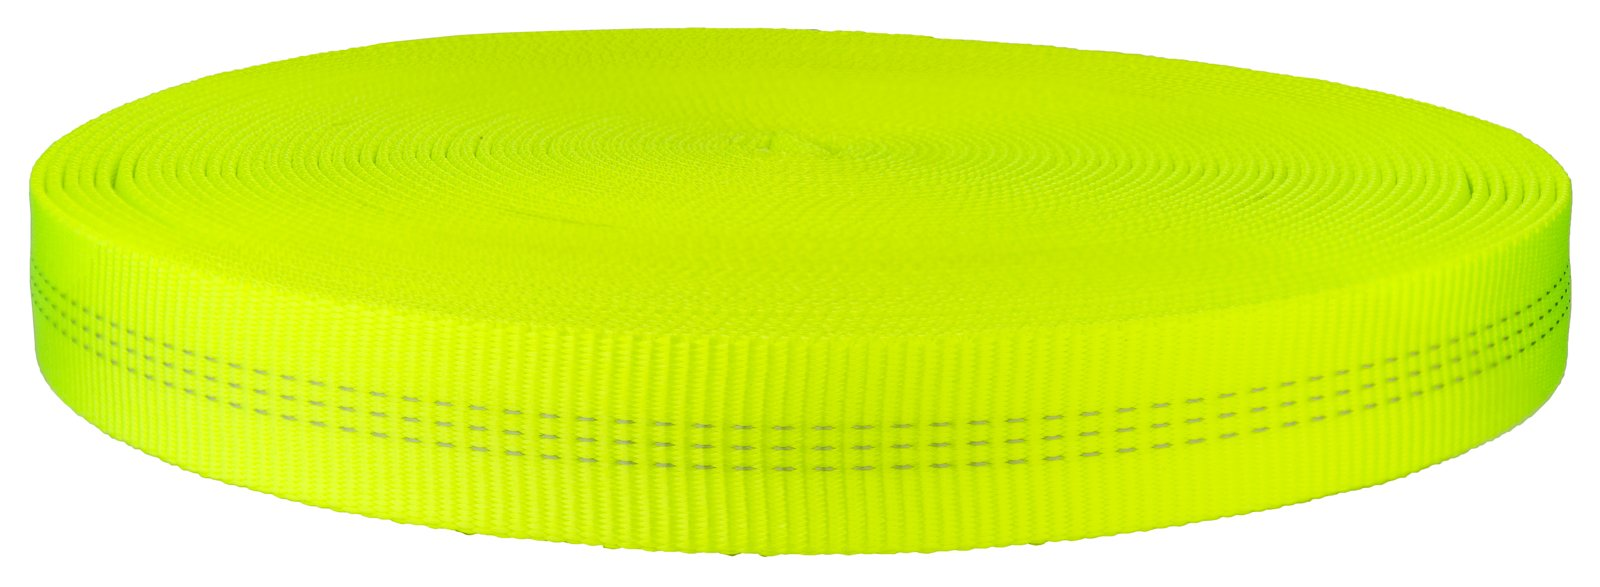 1 Inch Hot Yellow Tubular Nylon Webbing Closeout, 10 Yards